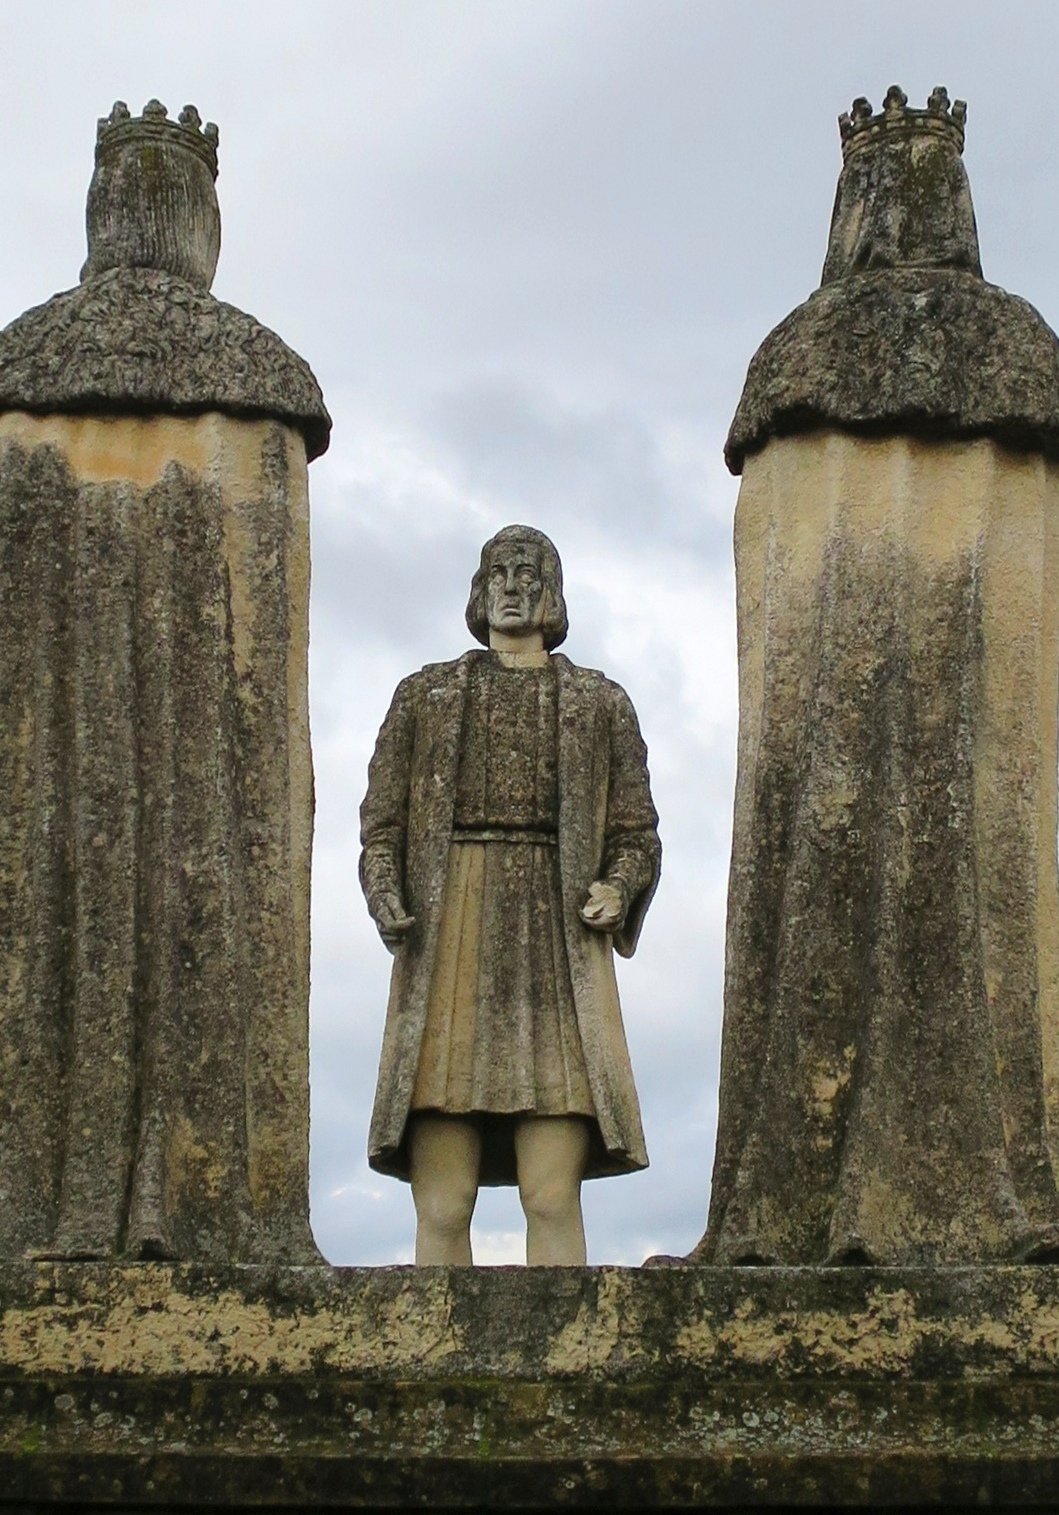 File:Córdoba (Spain), Statue of Christopher Columbus in the Gardens ...